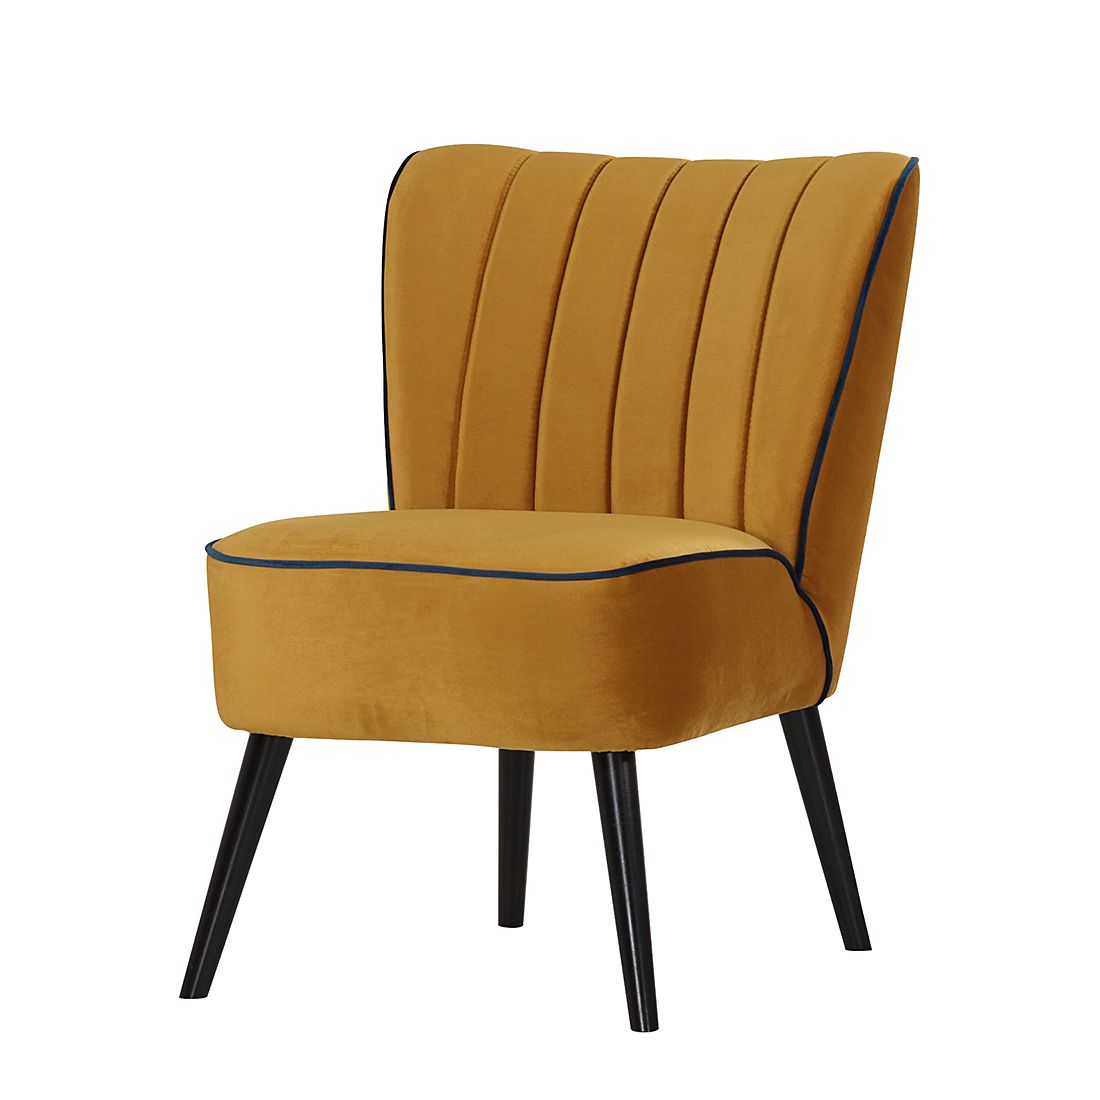 fauteuil melina microfibre bleu jaune moutarde studio monroe par studio monroe chez home24 fr. Black Bedroom Furniture Sets. Home Design Ideas